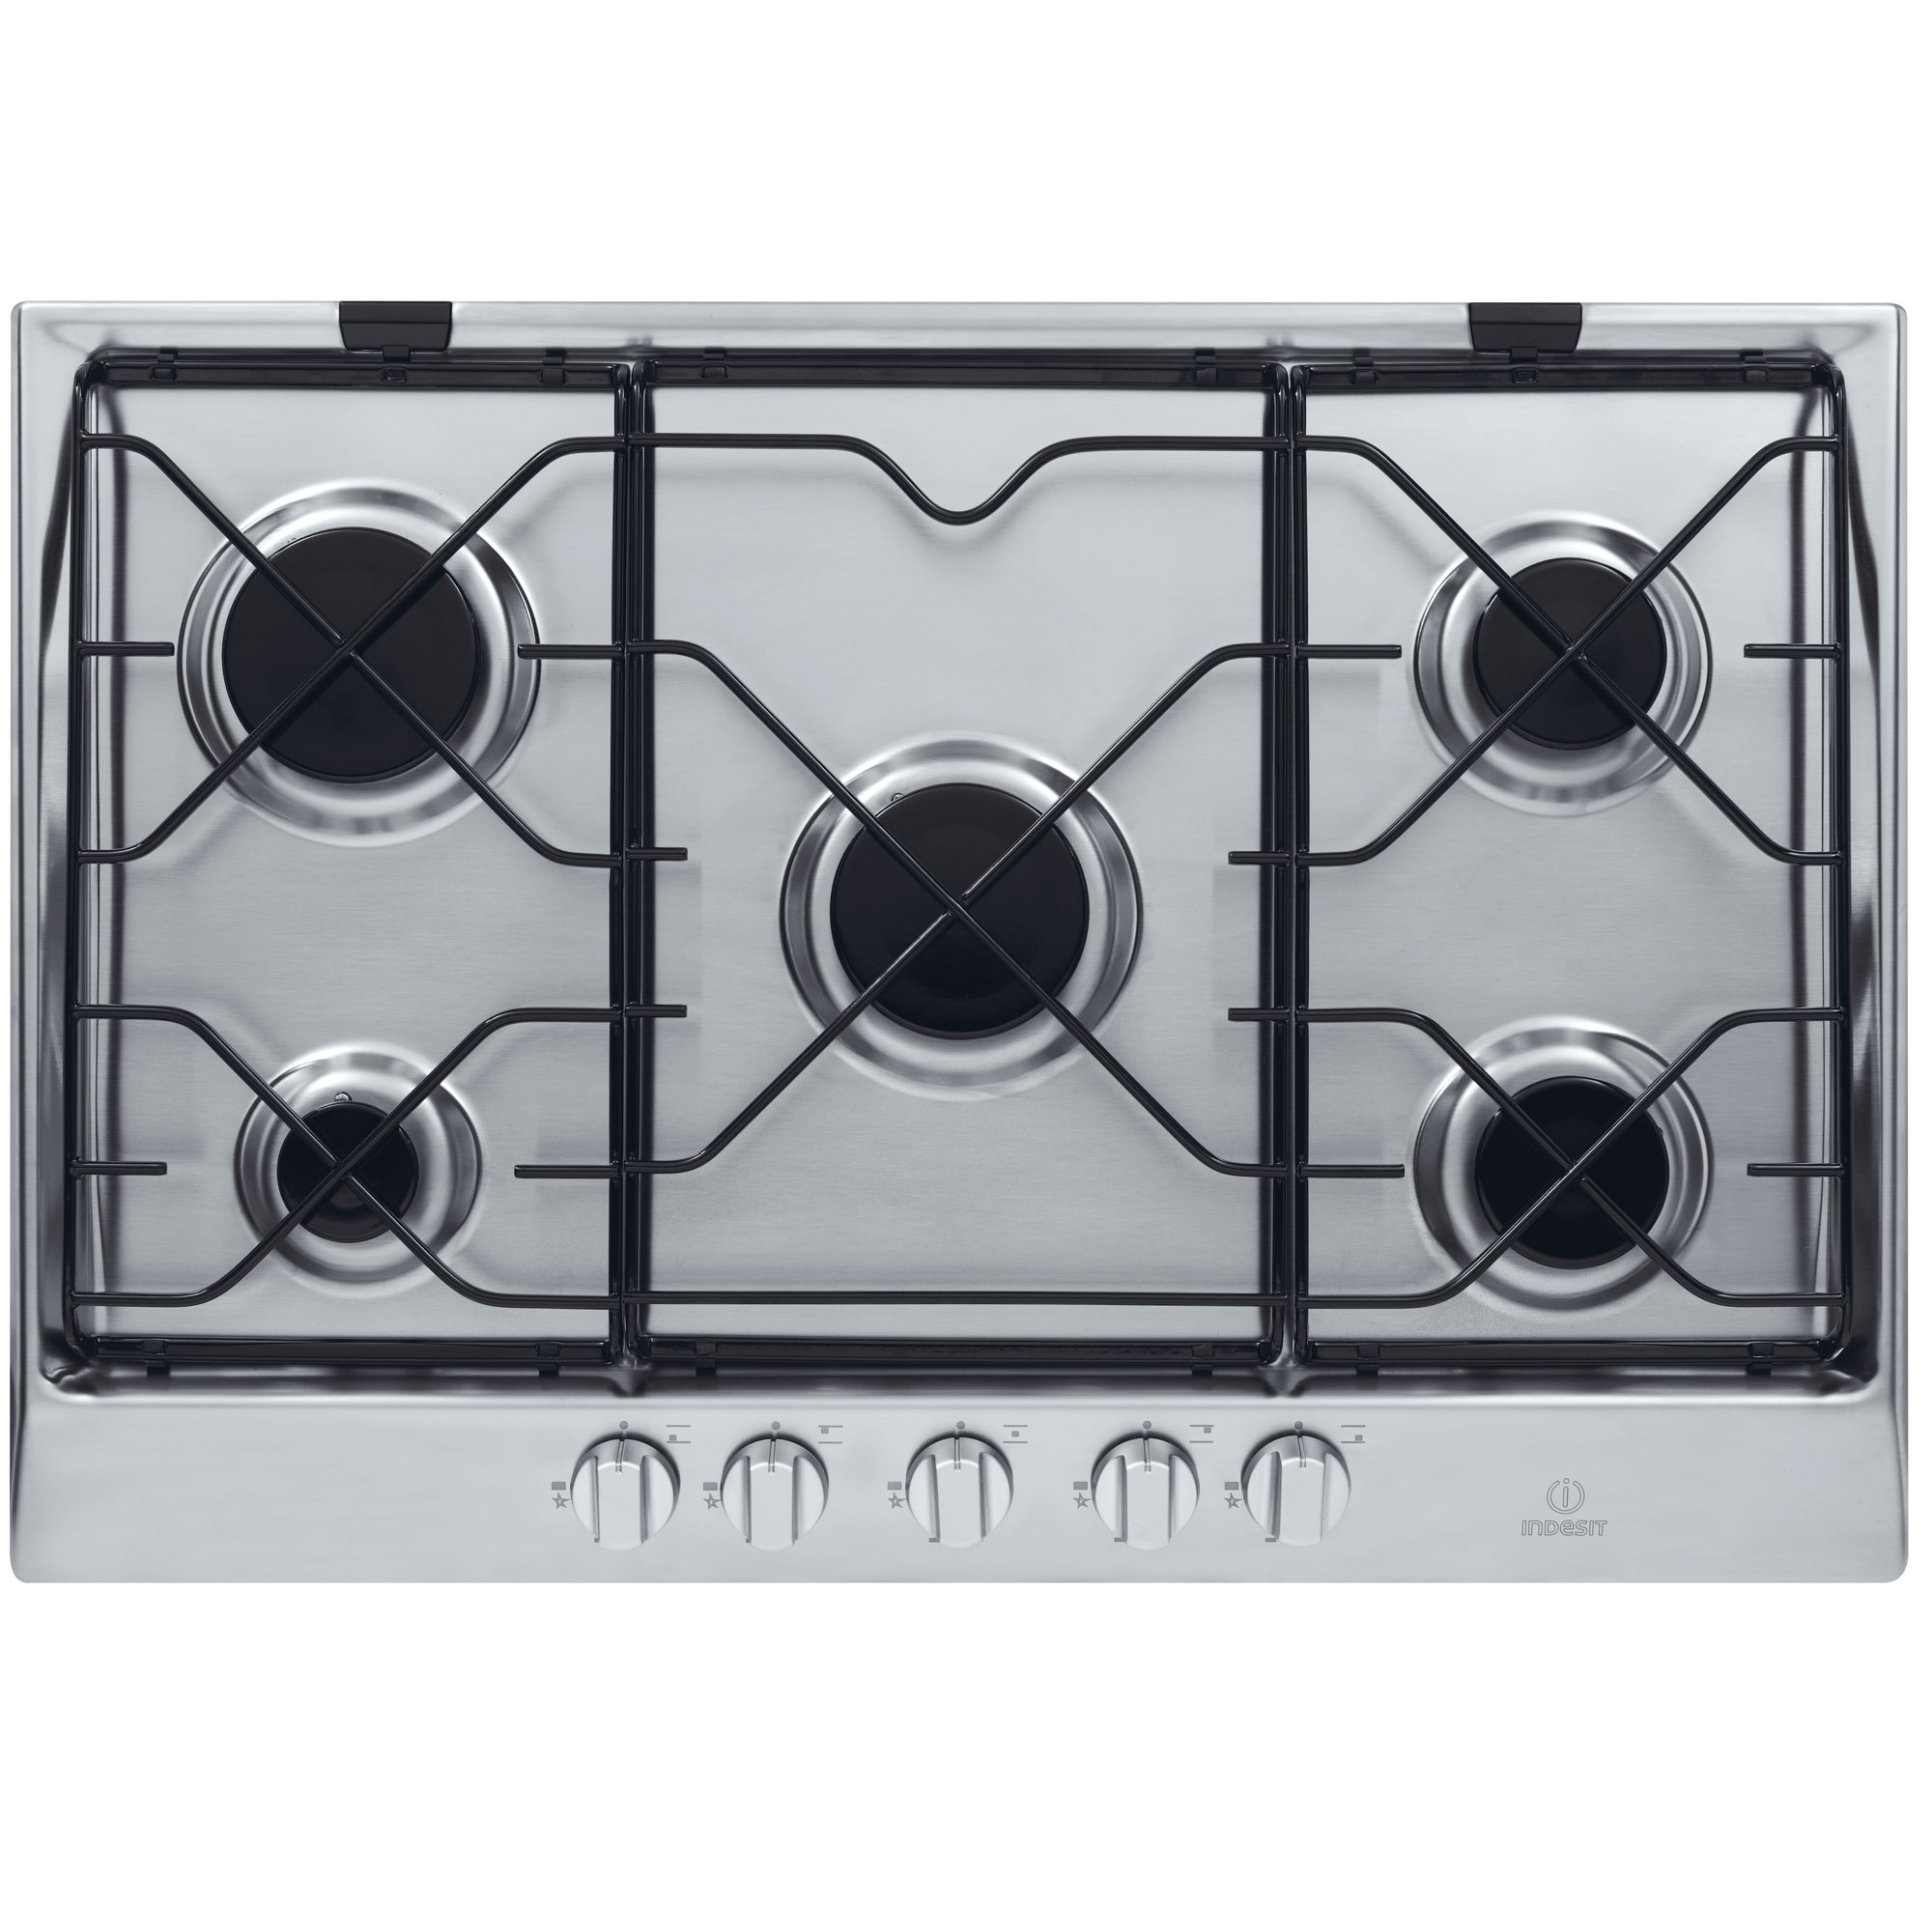 Table de cuisson a gaz - Table de cuisson mixte gaz induction 5 feux ...